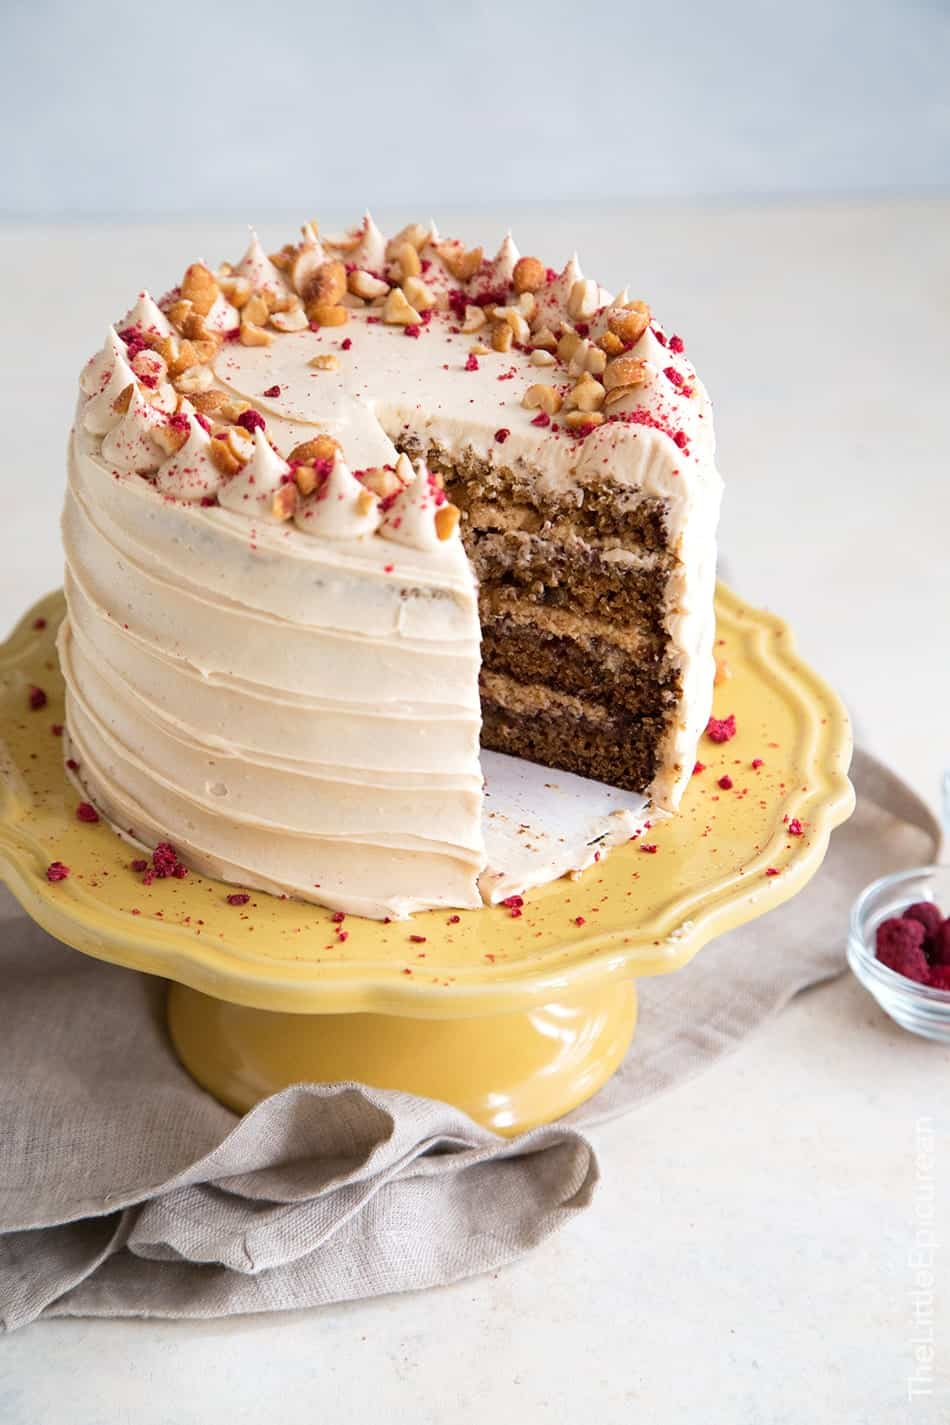 Banana Peanut Butter Jelly Cake